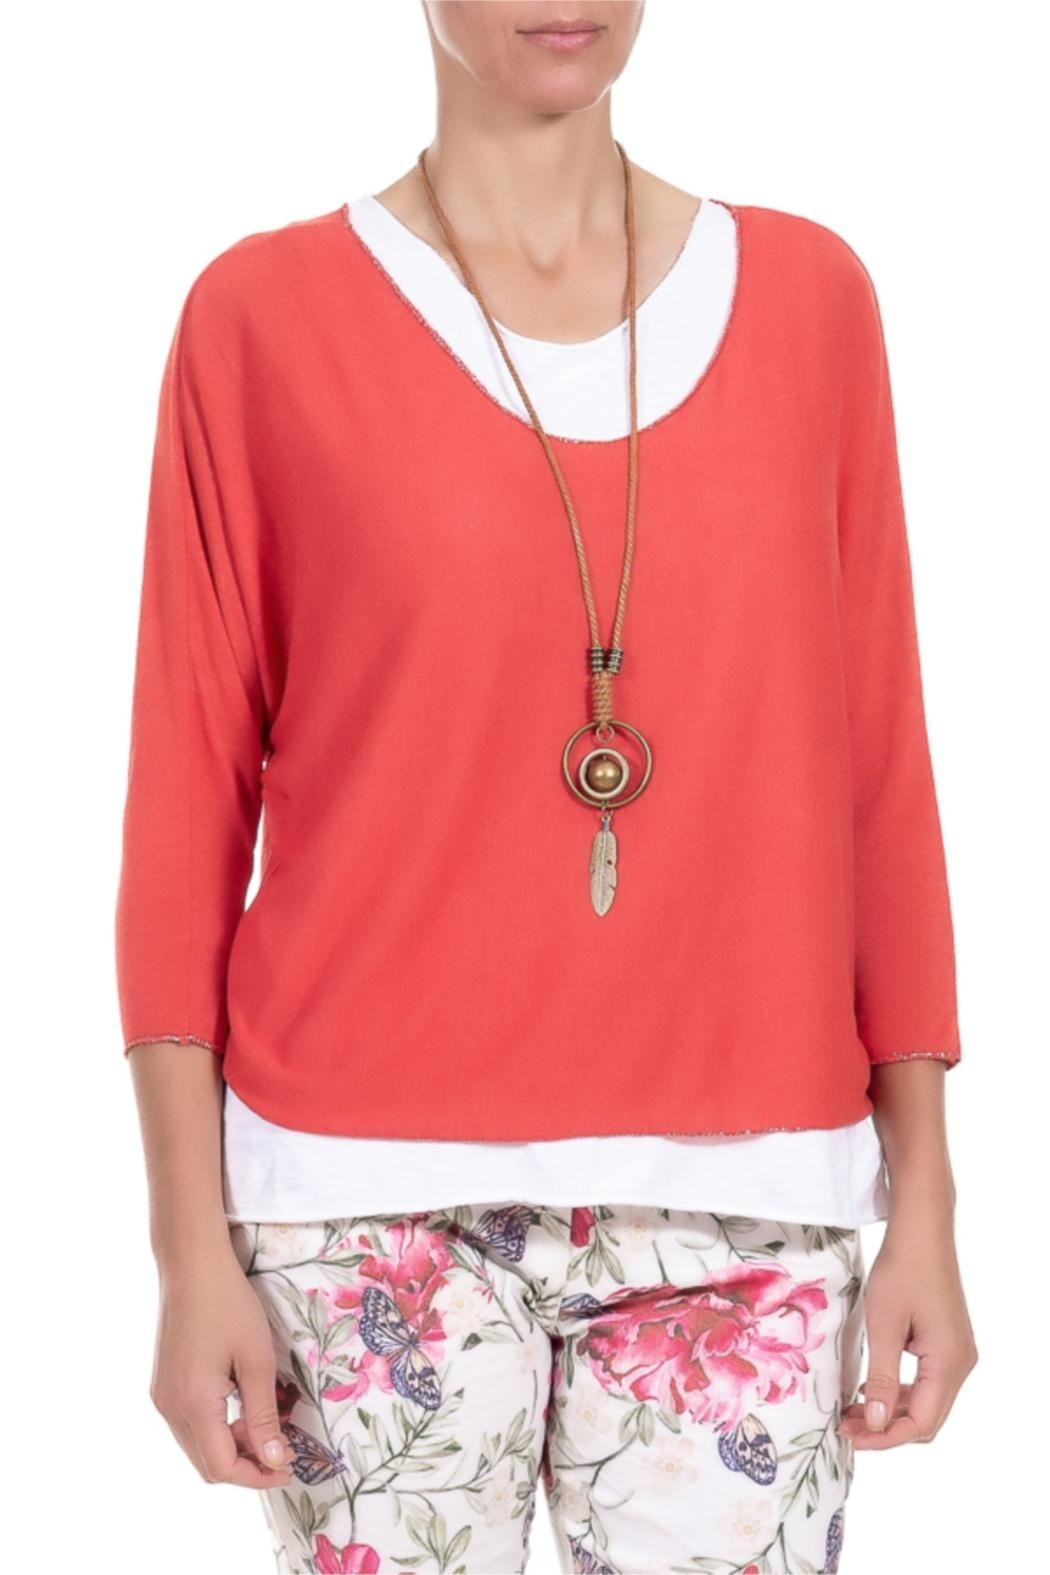 Angela Mara Flamenco Red Pullover With Necklace - Main Image